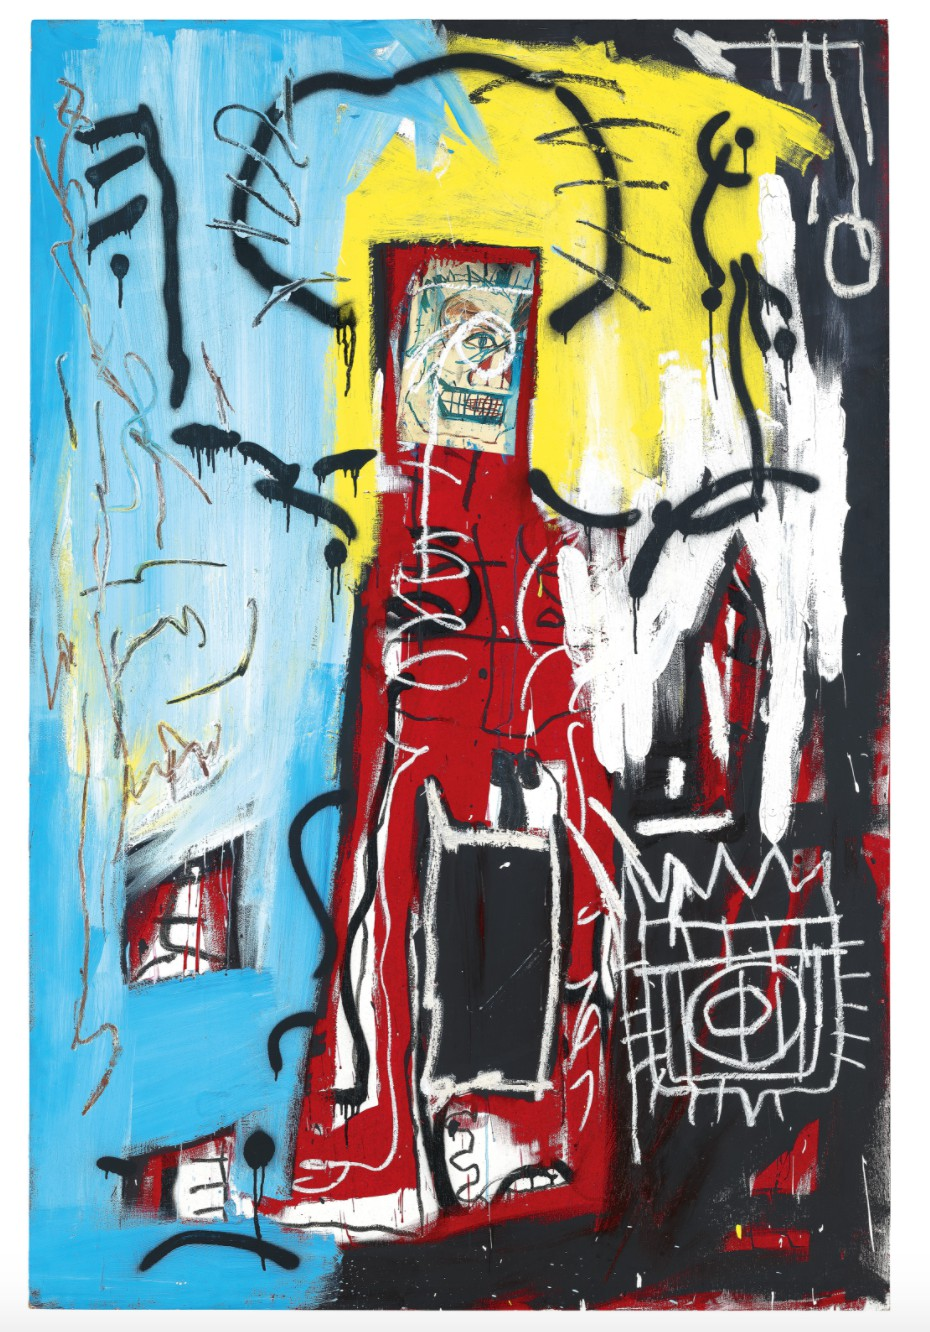 Jean-Michel Basquiat, Untitled (One Eyed Man or Xerox Face), 1982